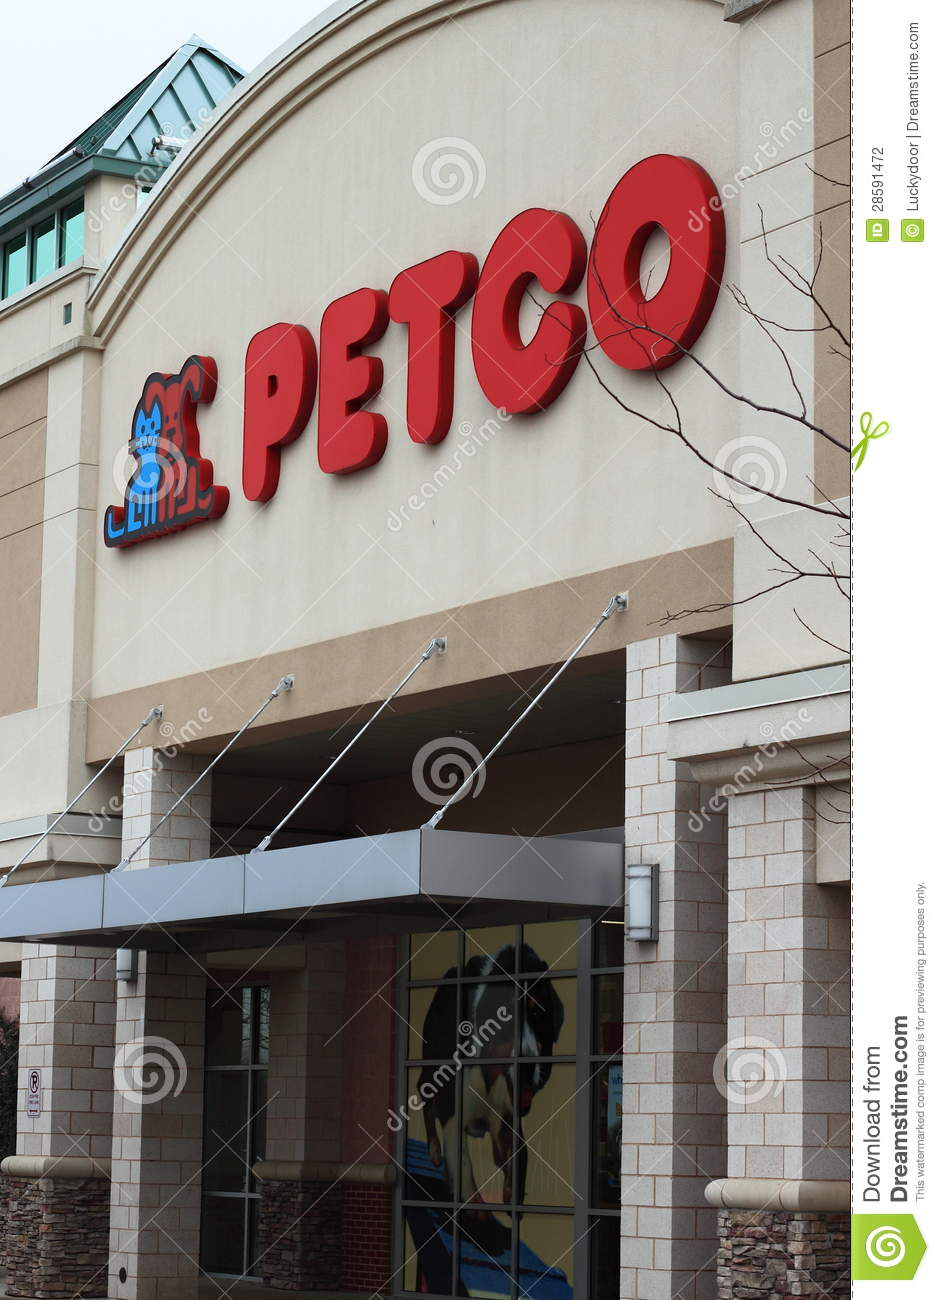 Petco Animal Pet Supplies Store Editorial Photography